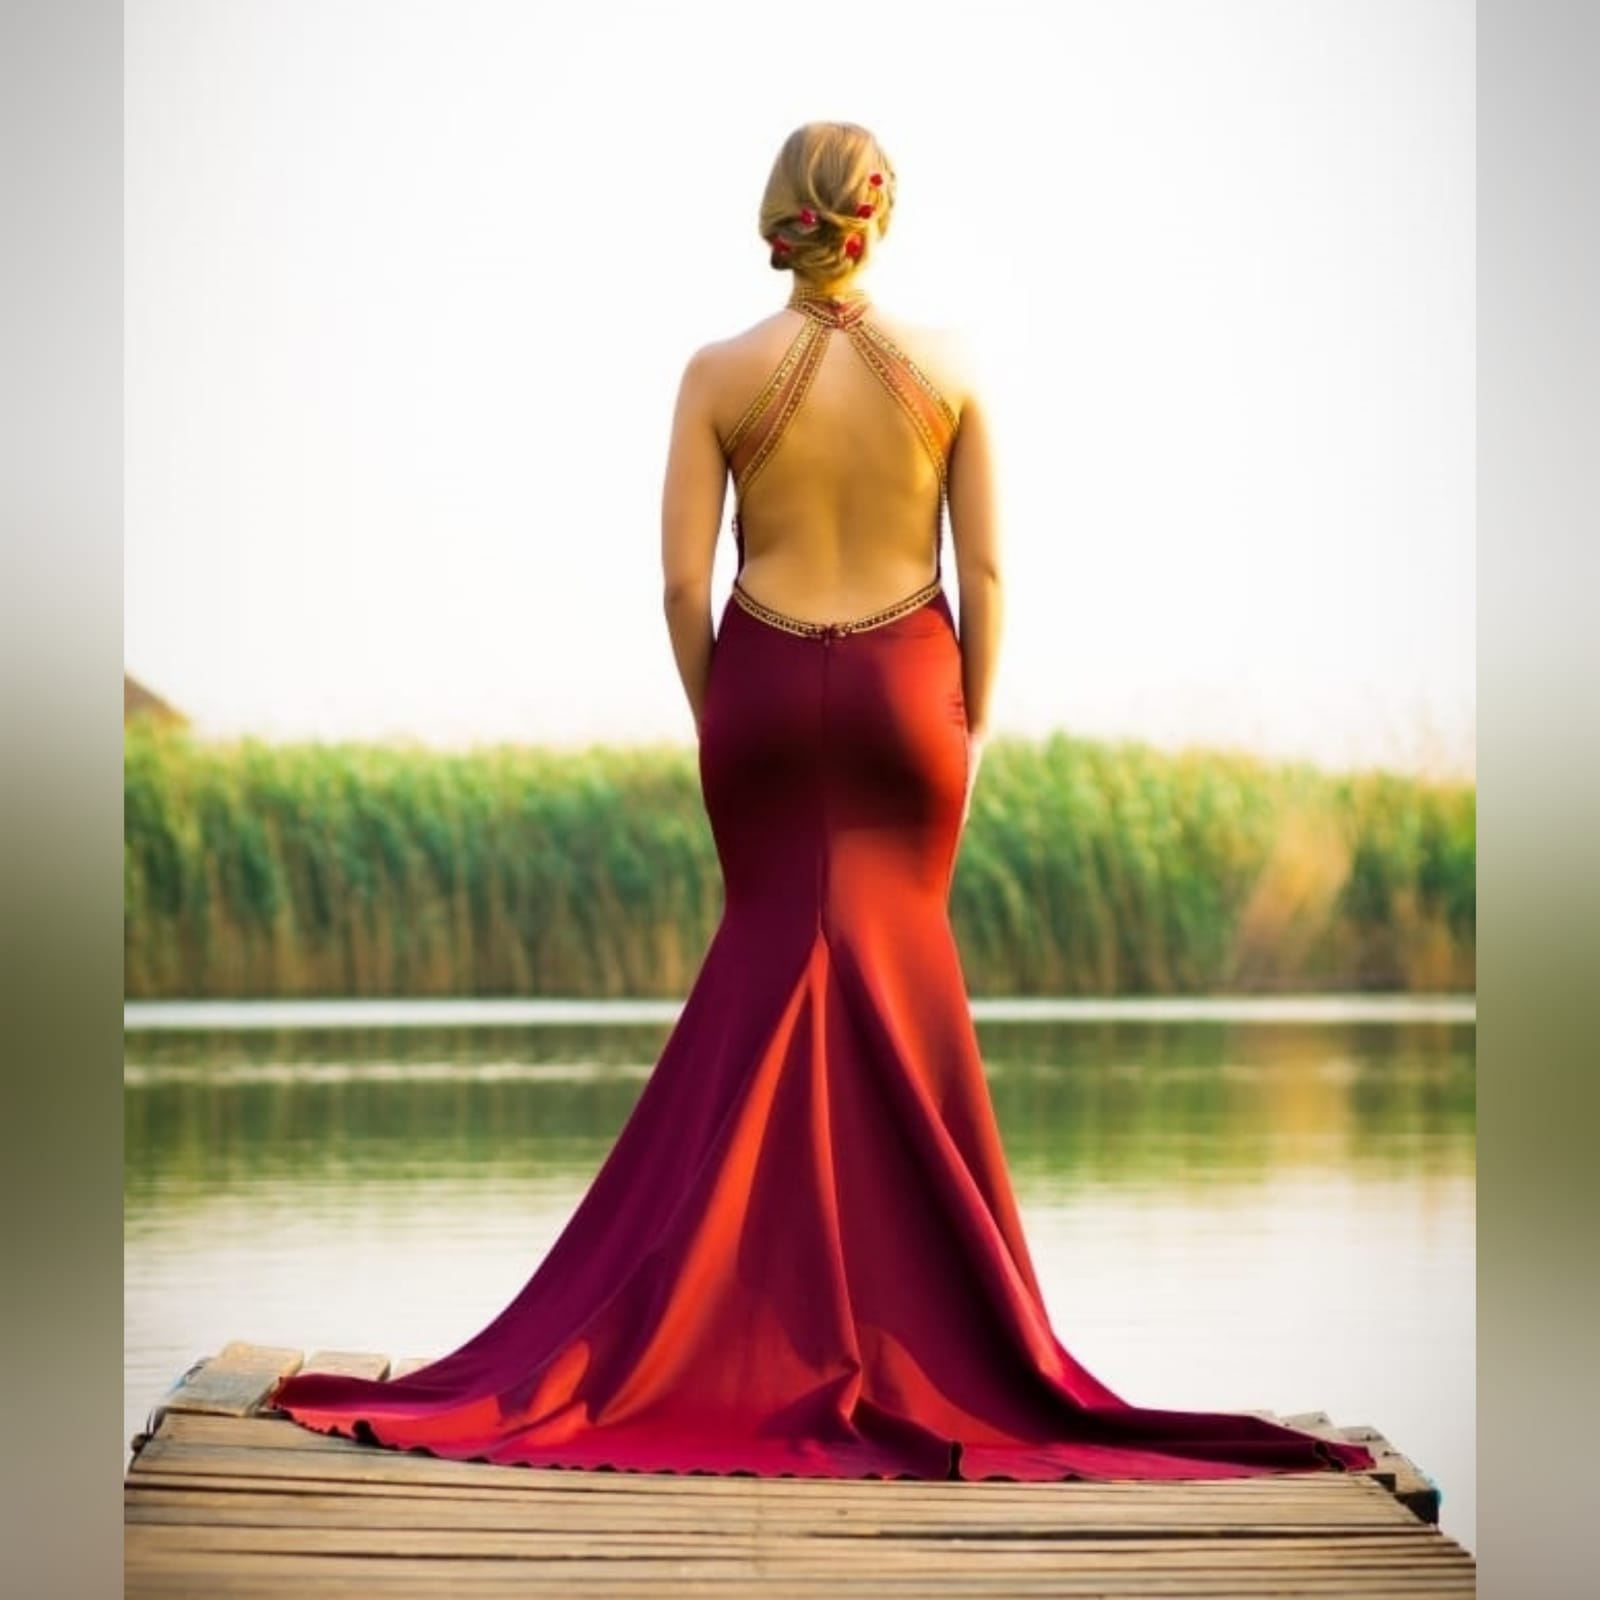 Maroon and gold matric farewell dress with a beaded bodice 4 maroon and gold matric farewell dress with a beaded bodice, low open back with beaded illusion straps. Illusion choker neckline detail with beads and diamante, with a slit and a train.